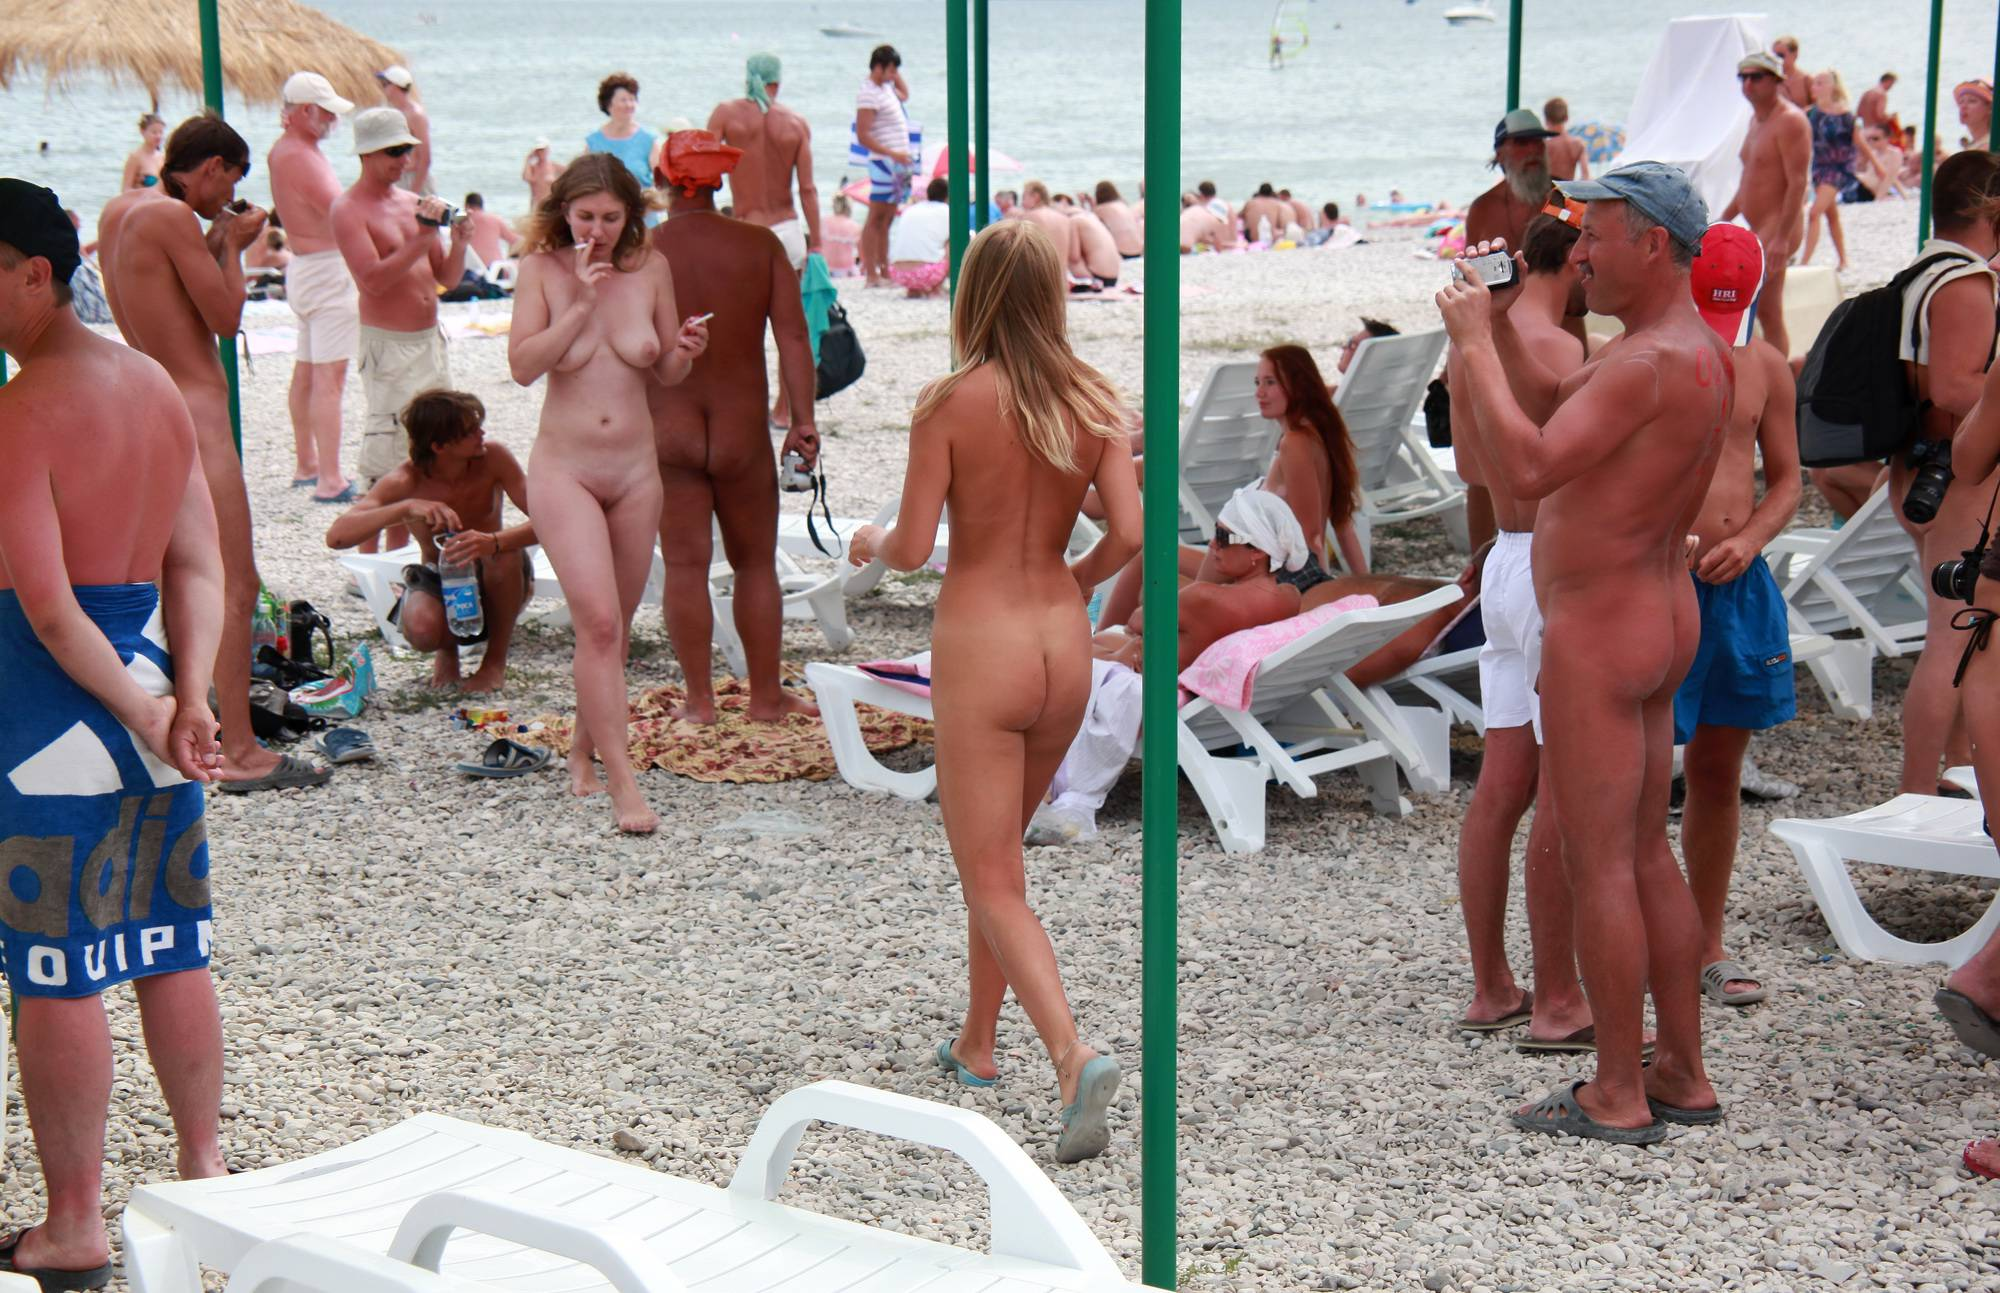 Nudist Girl Walk Following - 1